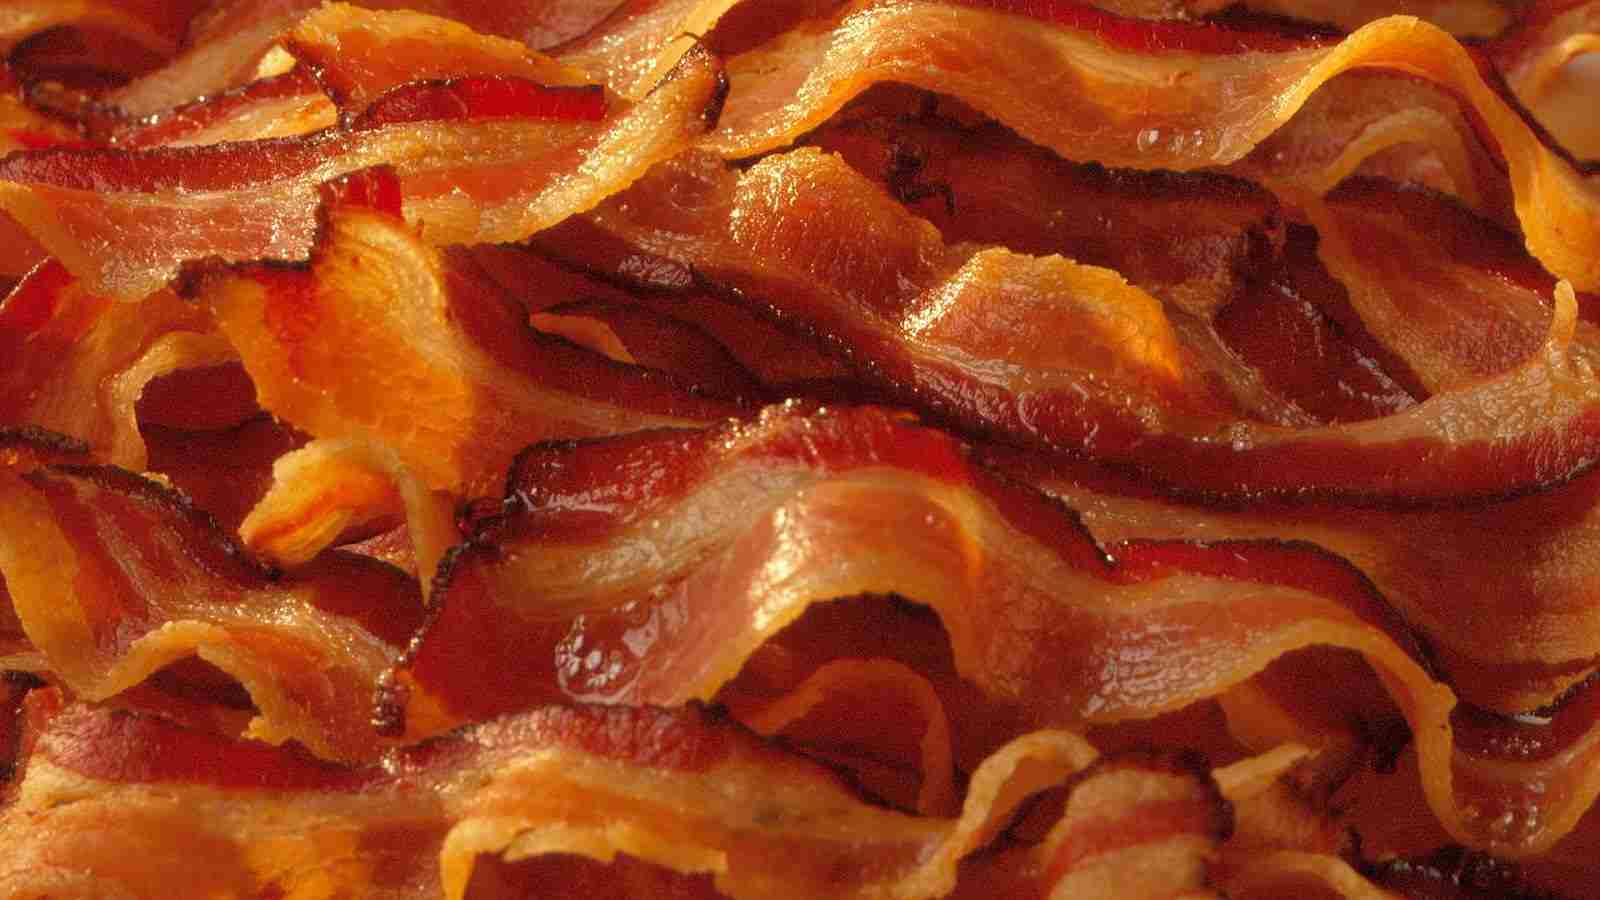 get as many pieces of bacon as you want.